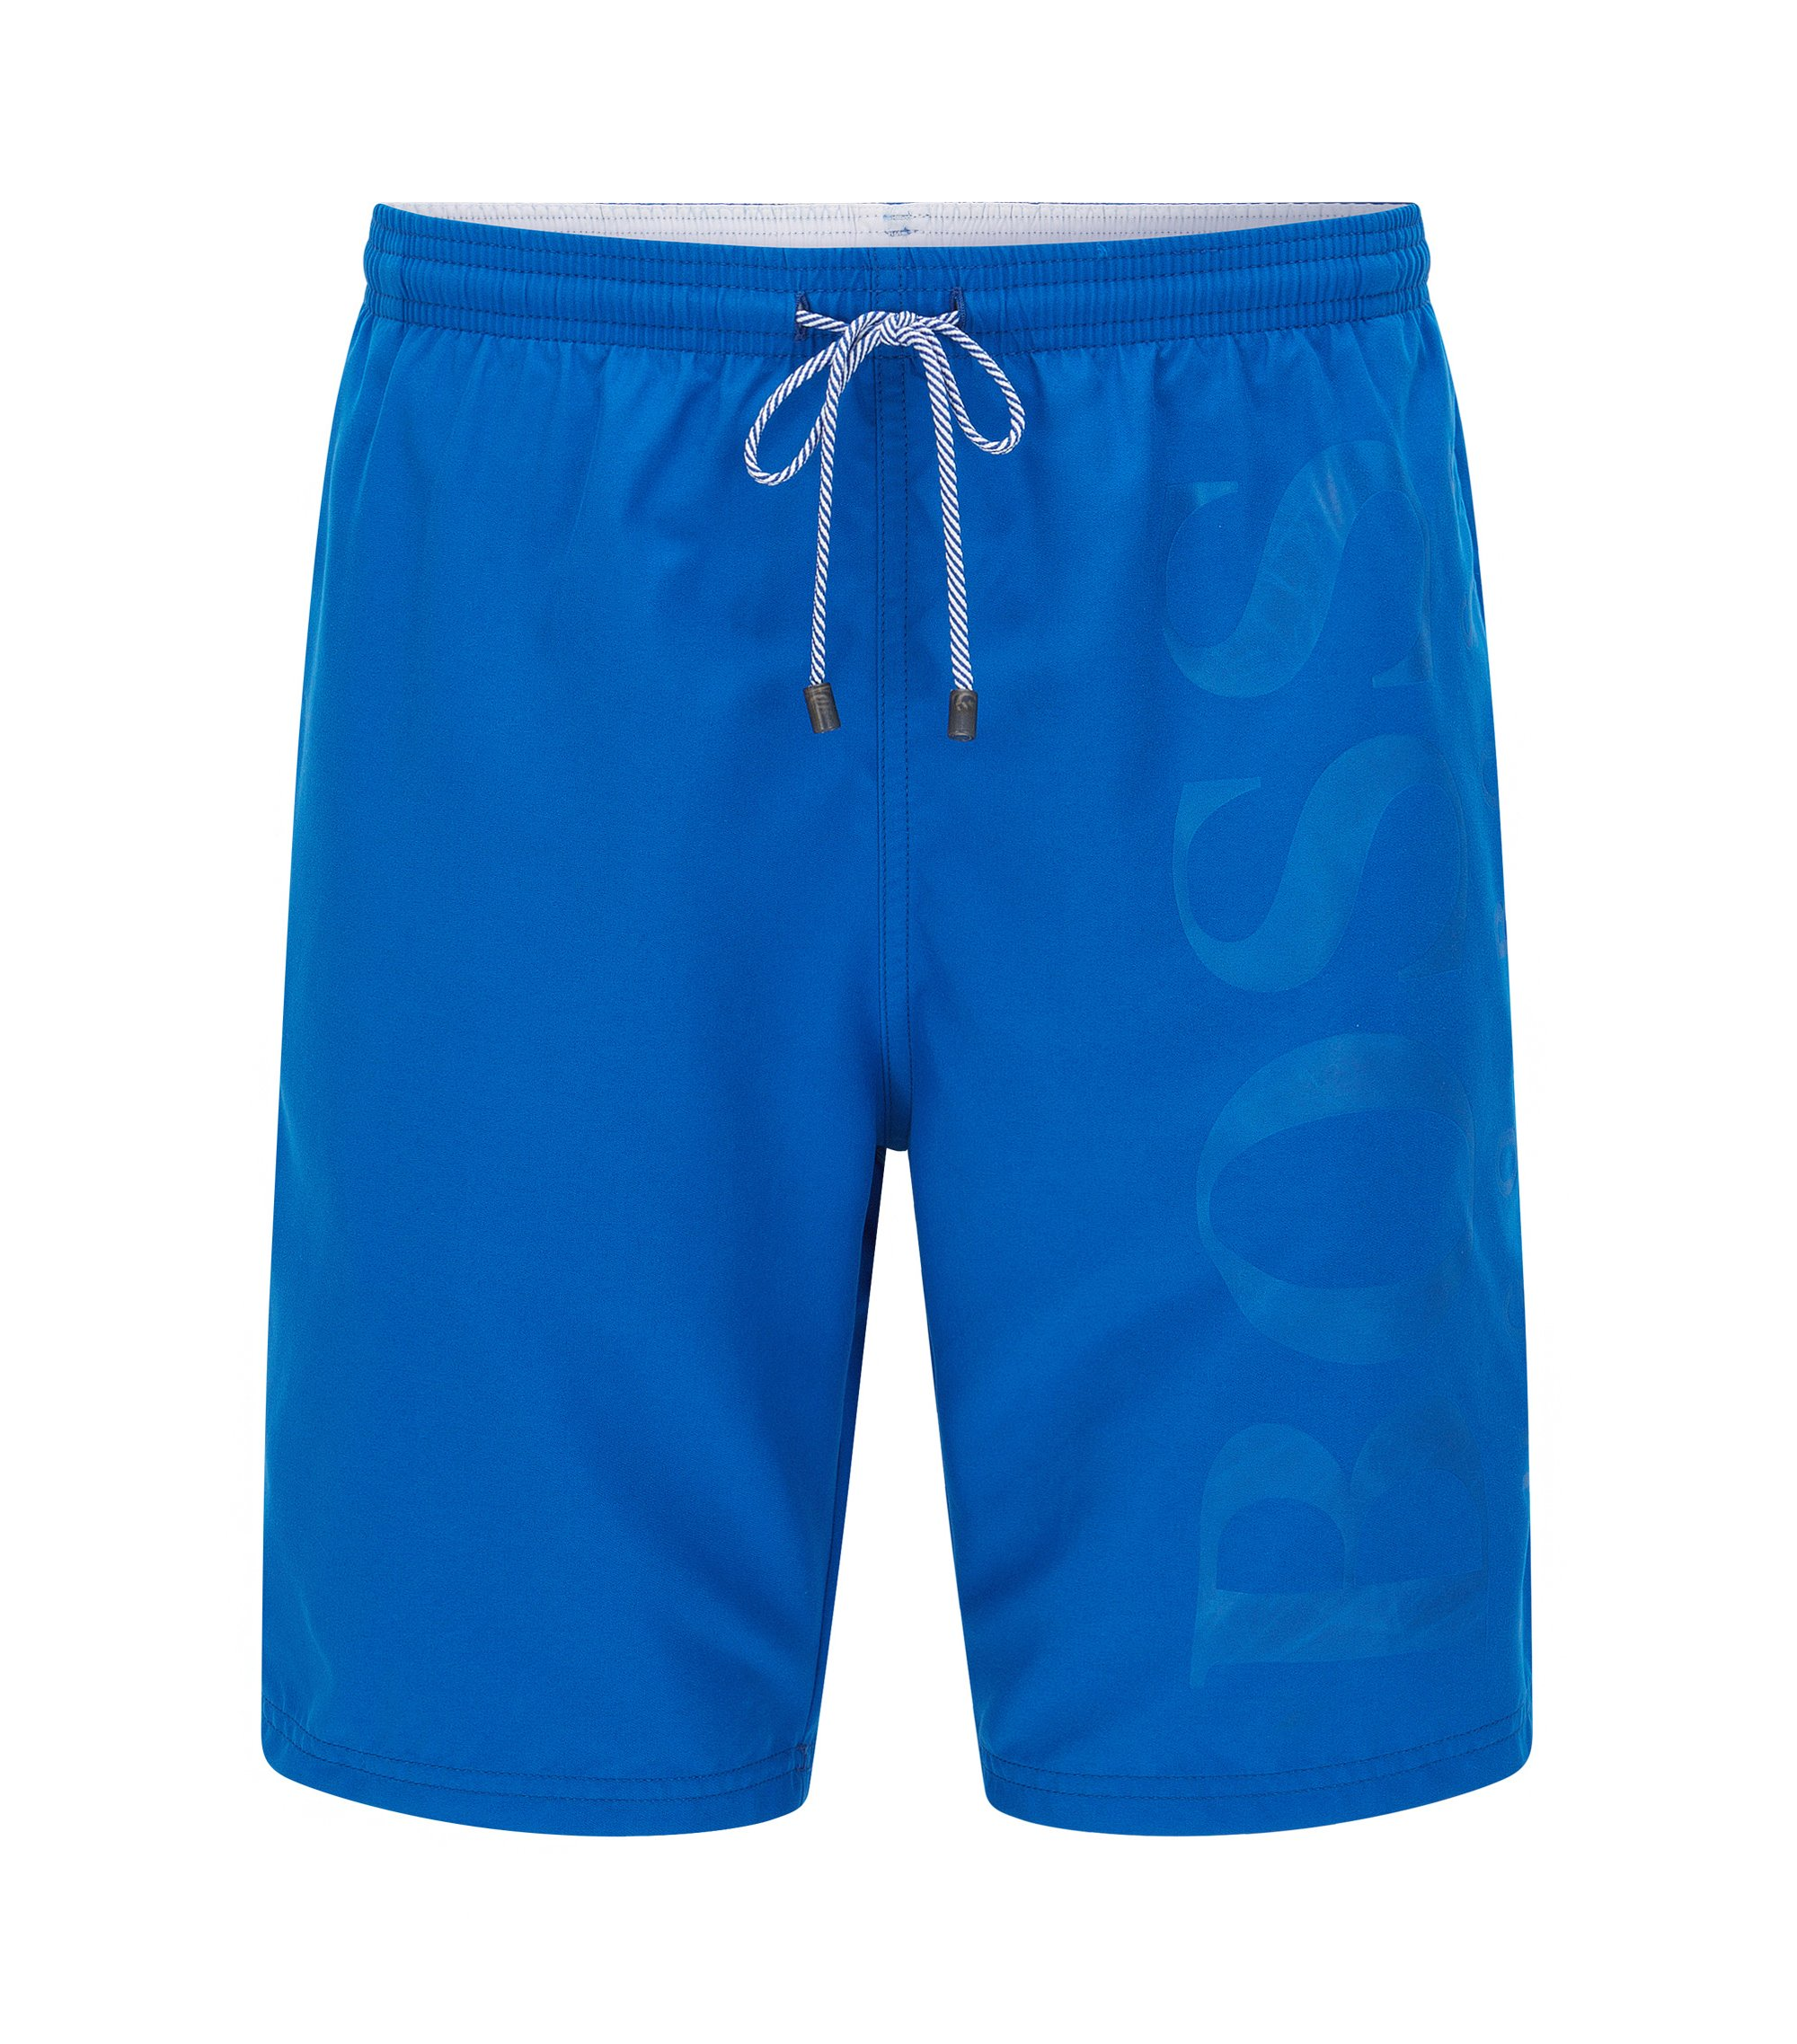 Logo Swim Trunk | Orca, Blue